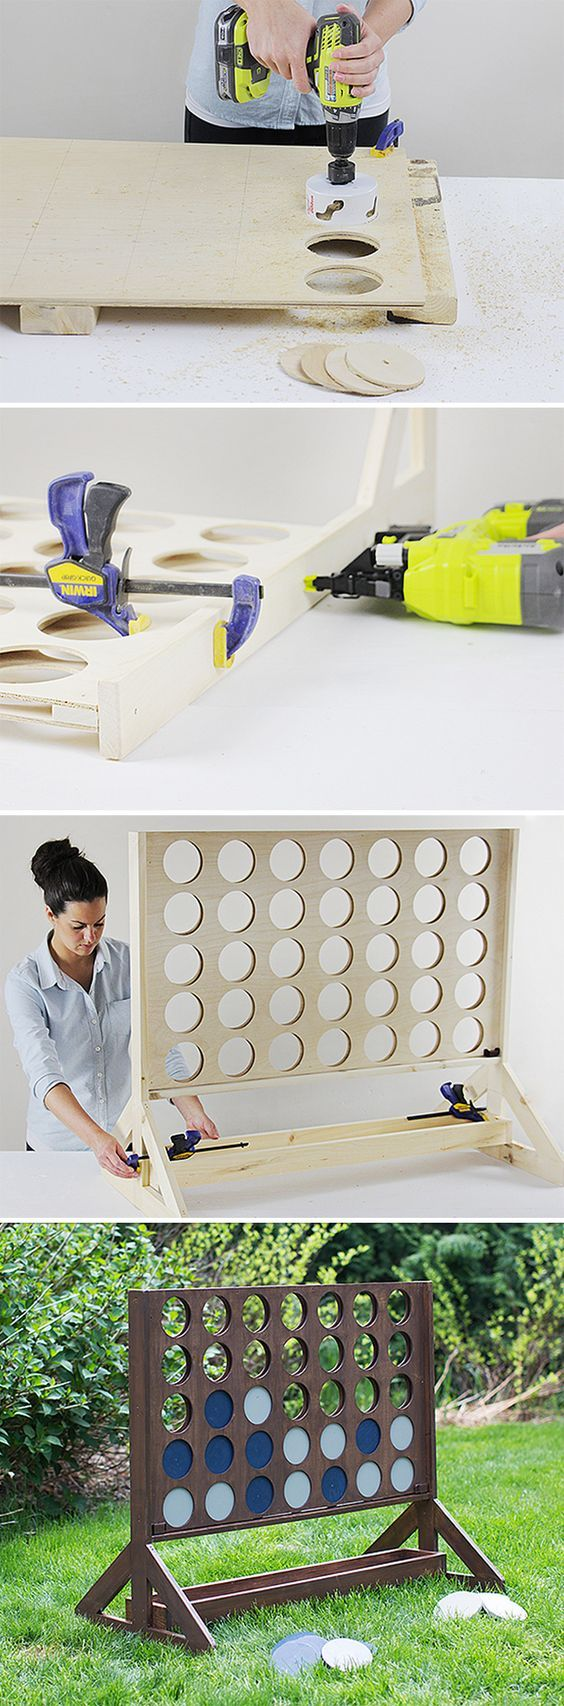 Connect Four ~ Build a giant backyard four in a row game | Andrea's Notebook